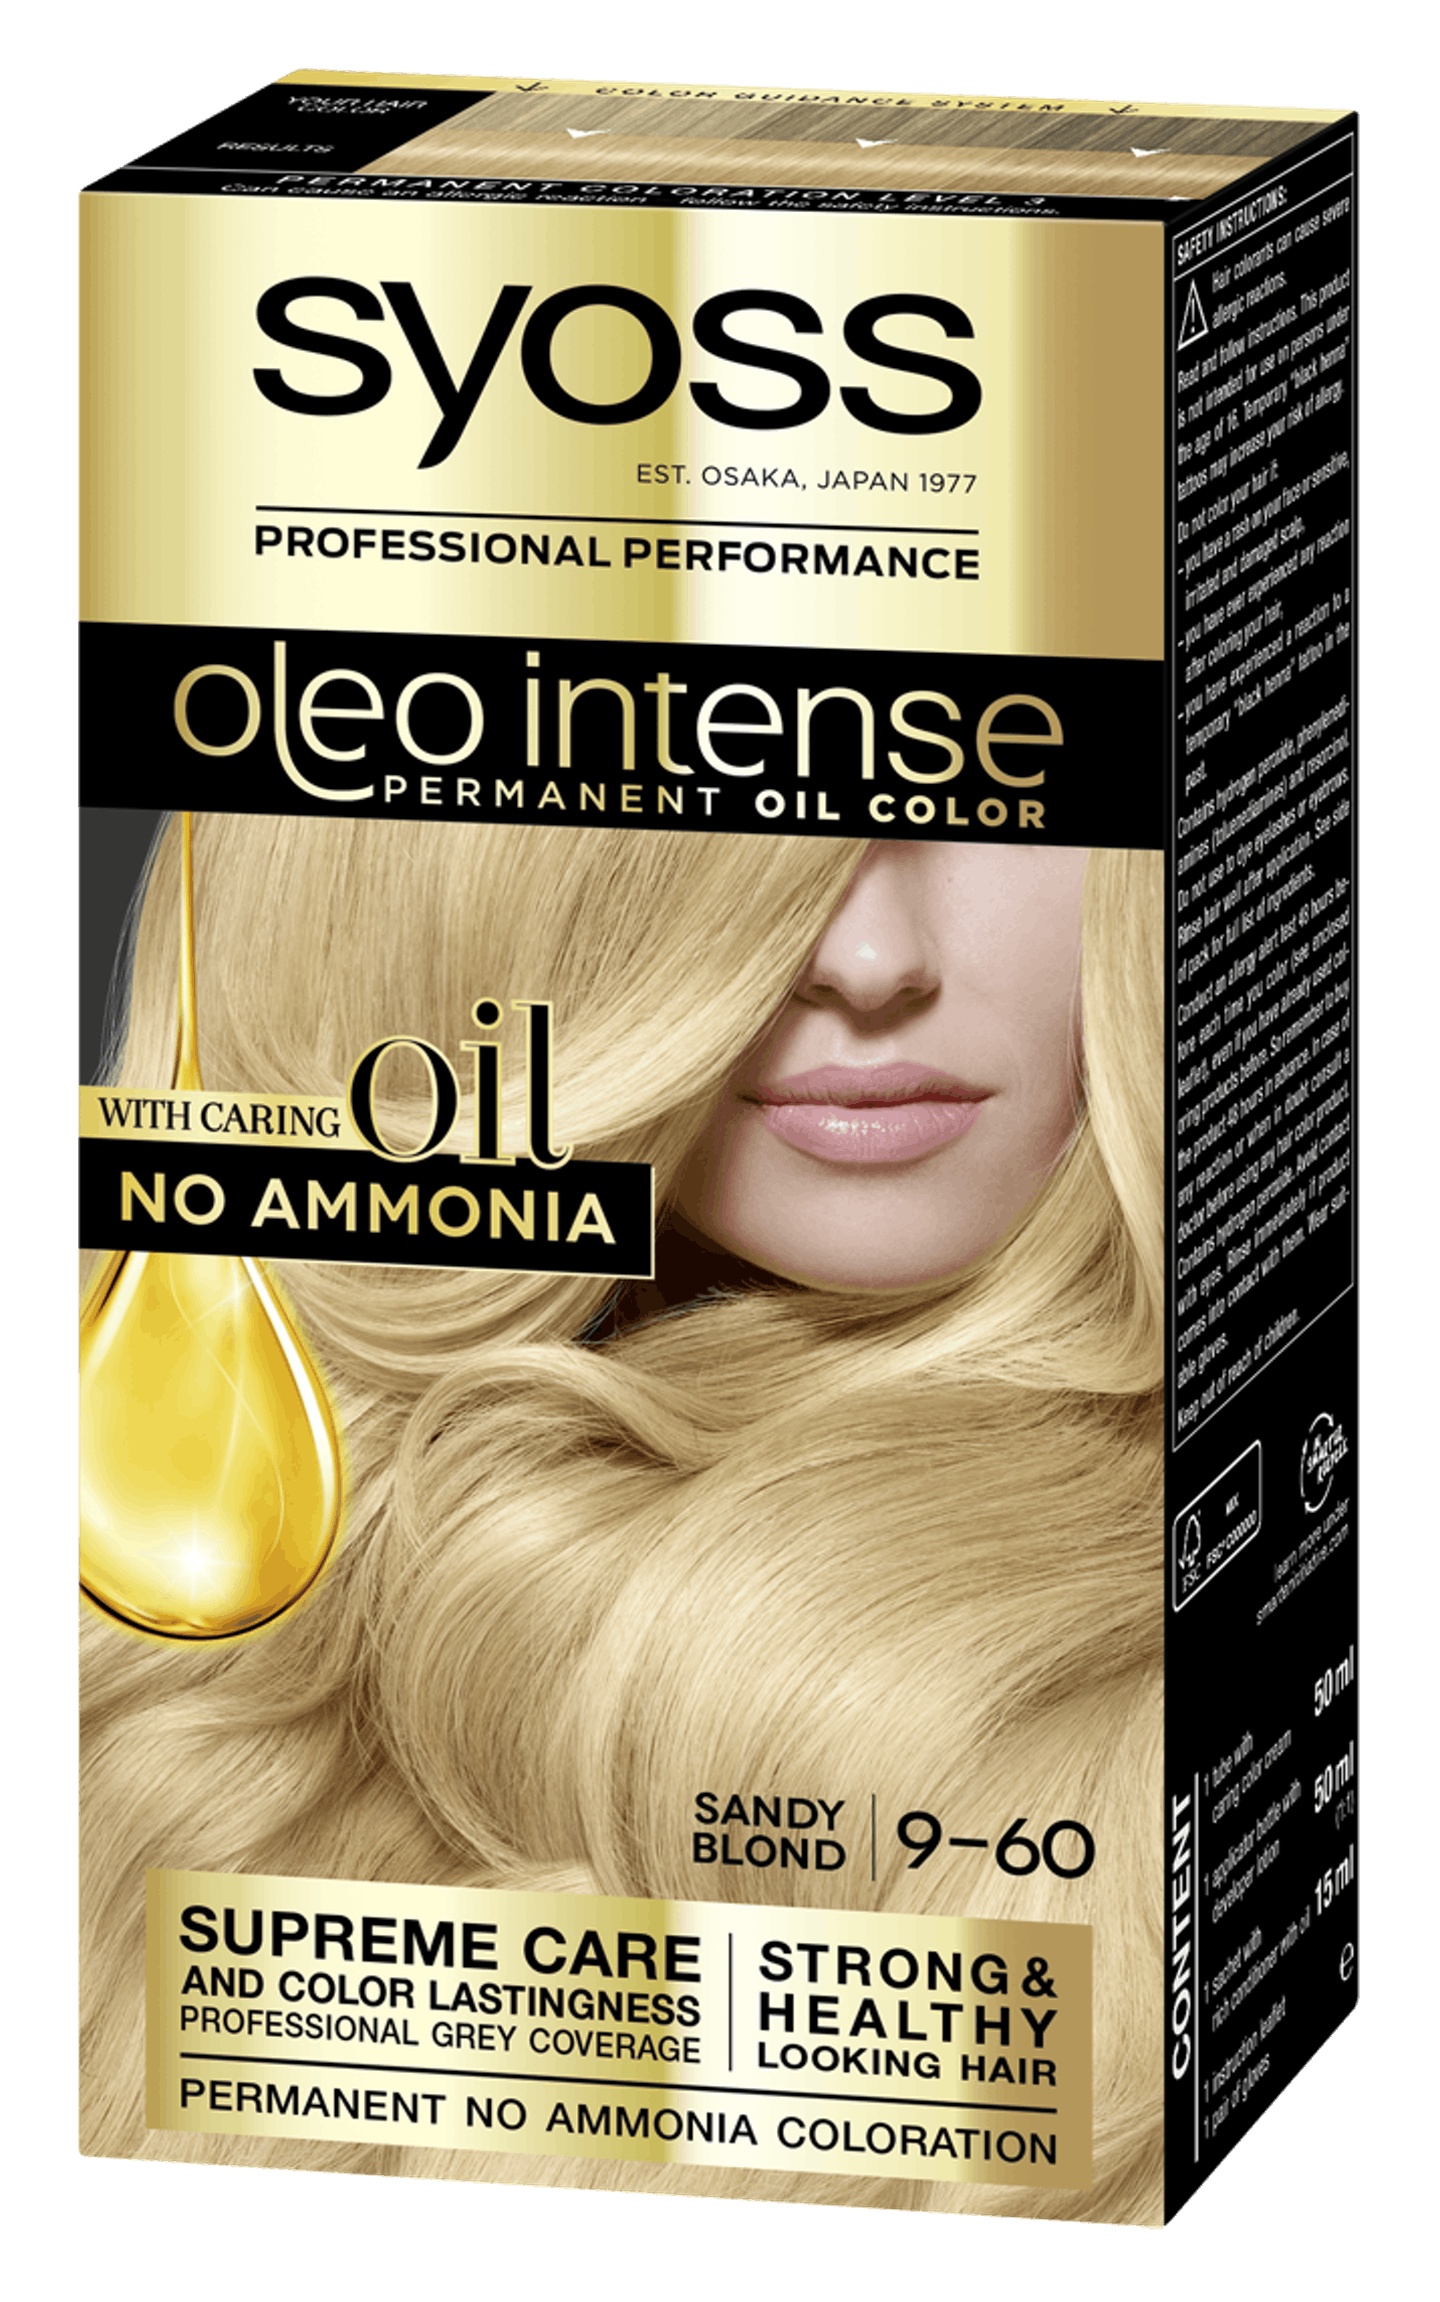 Syoss Oleo Intense Permanent Oil Color 9-60 Sandy Blond